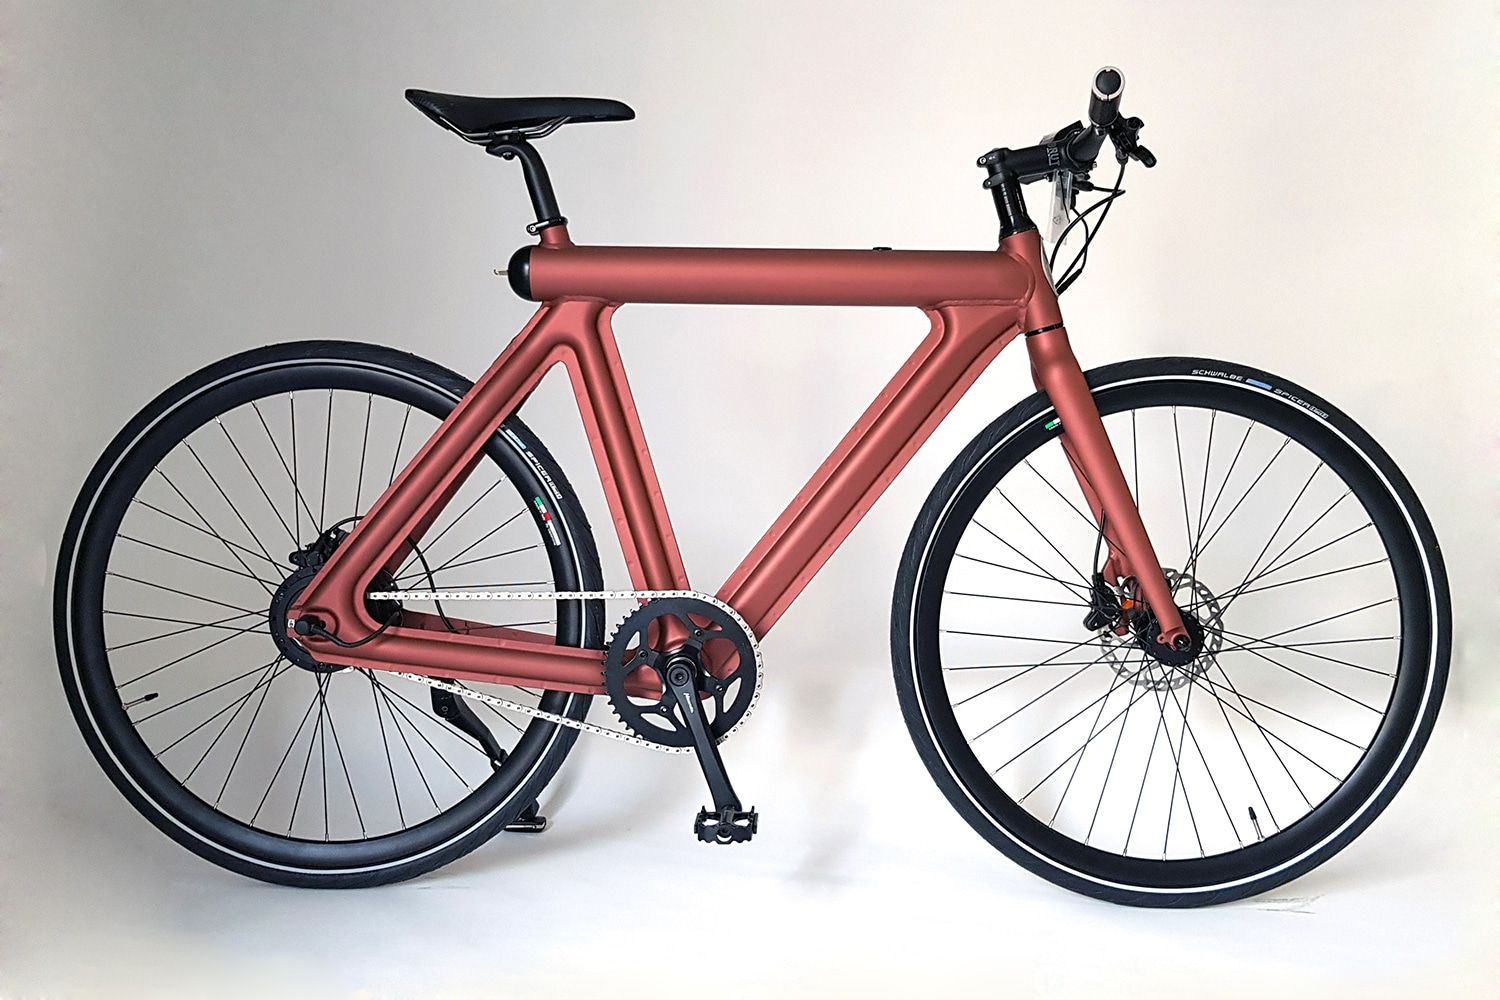 Leaos Pressed E Bike With An Invisible Drive Weighs Only 15 Kg In